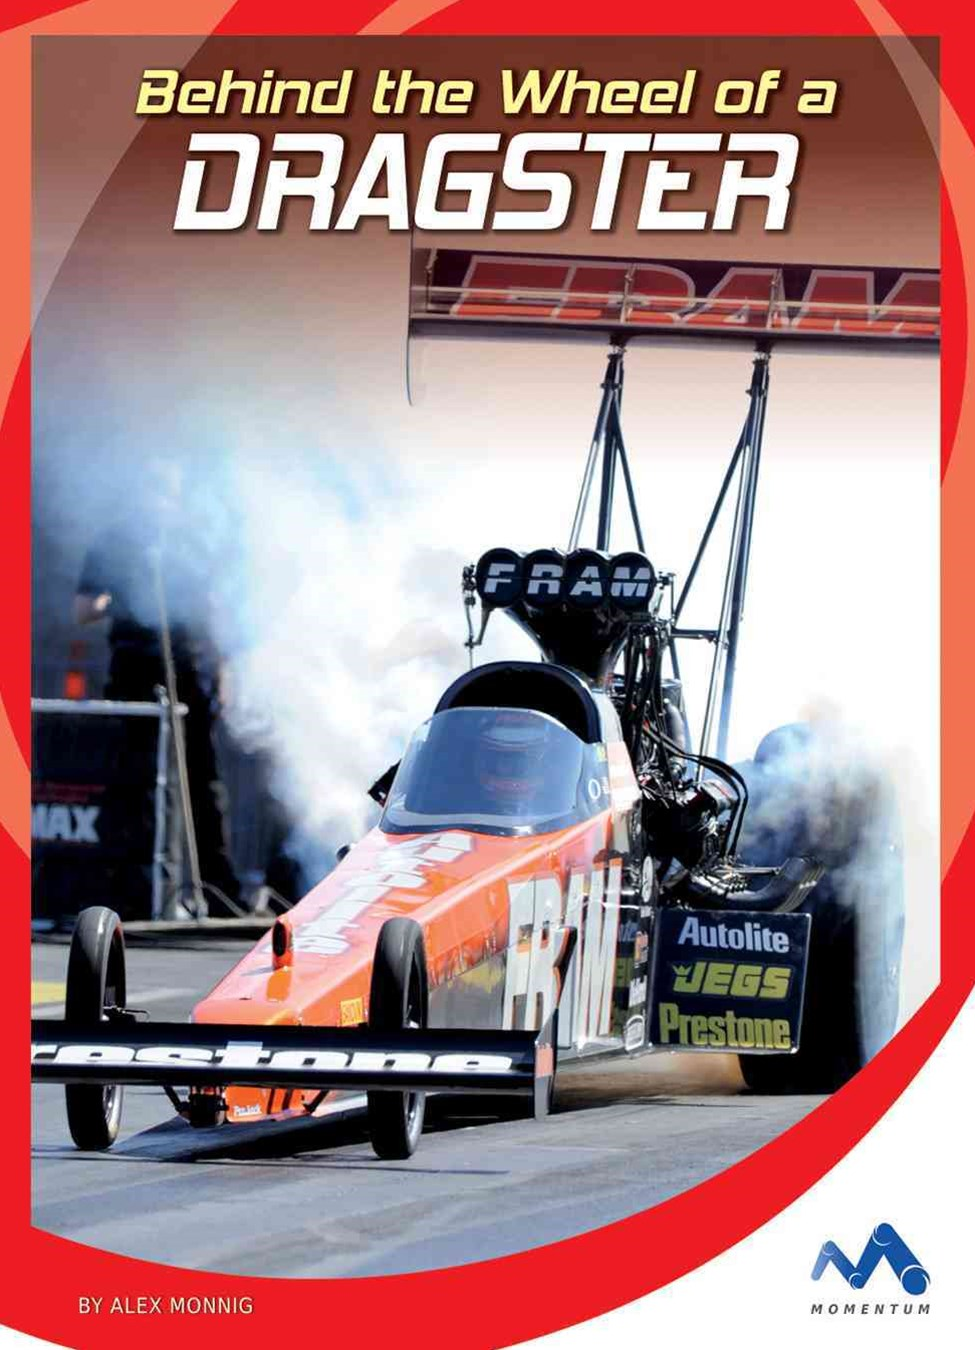 Behind the Wheel of a Dragster